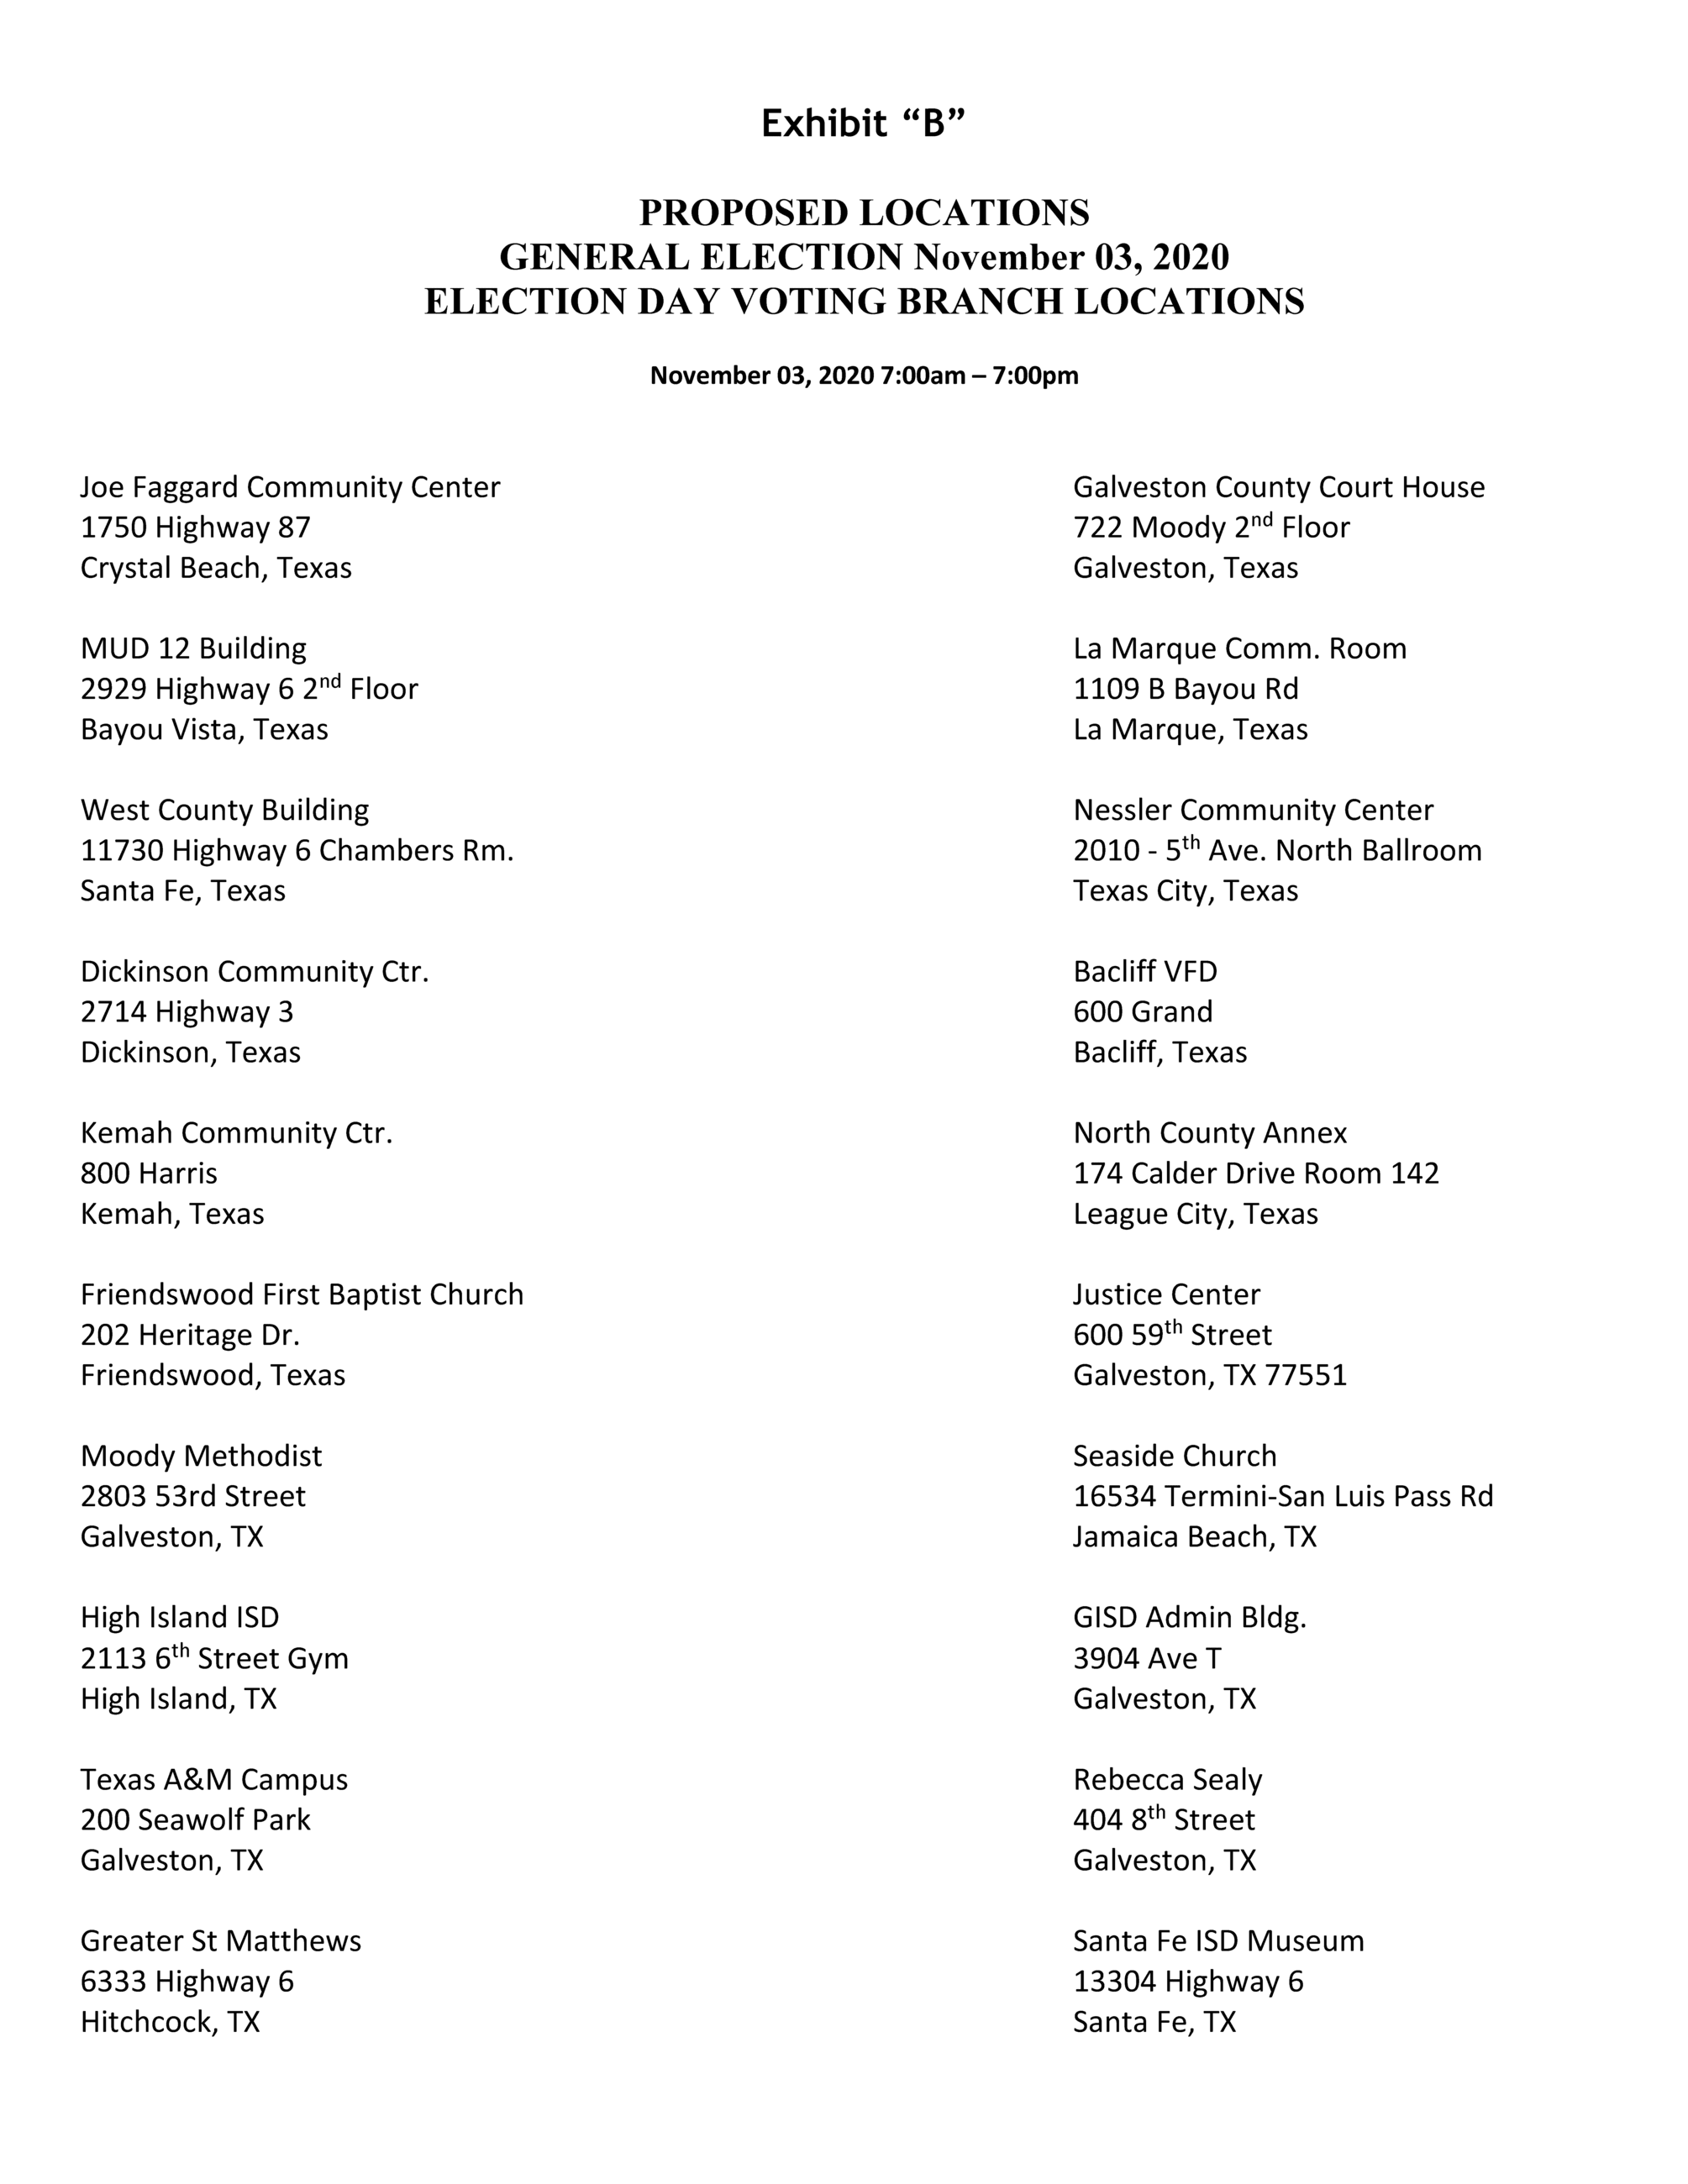 3. Election Day 11-03-2020 Polling Locations - Copy_Page_1